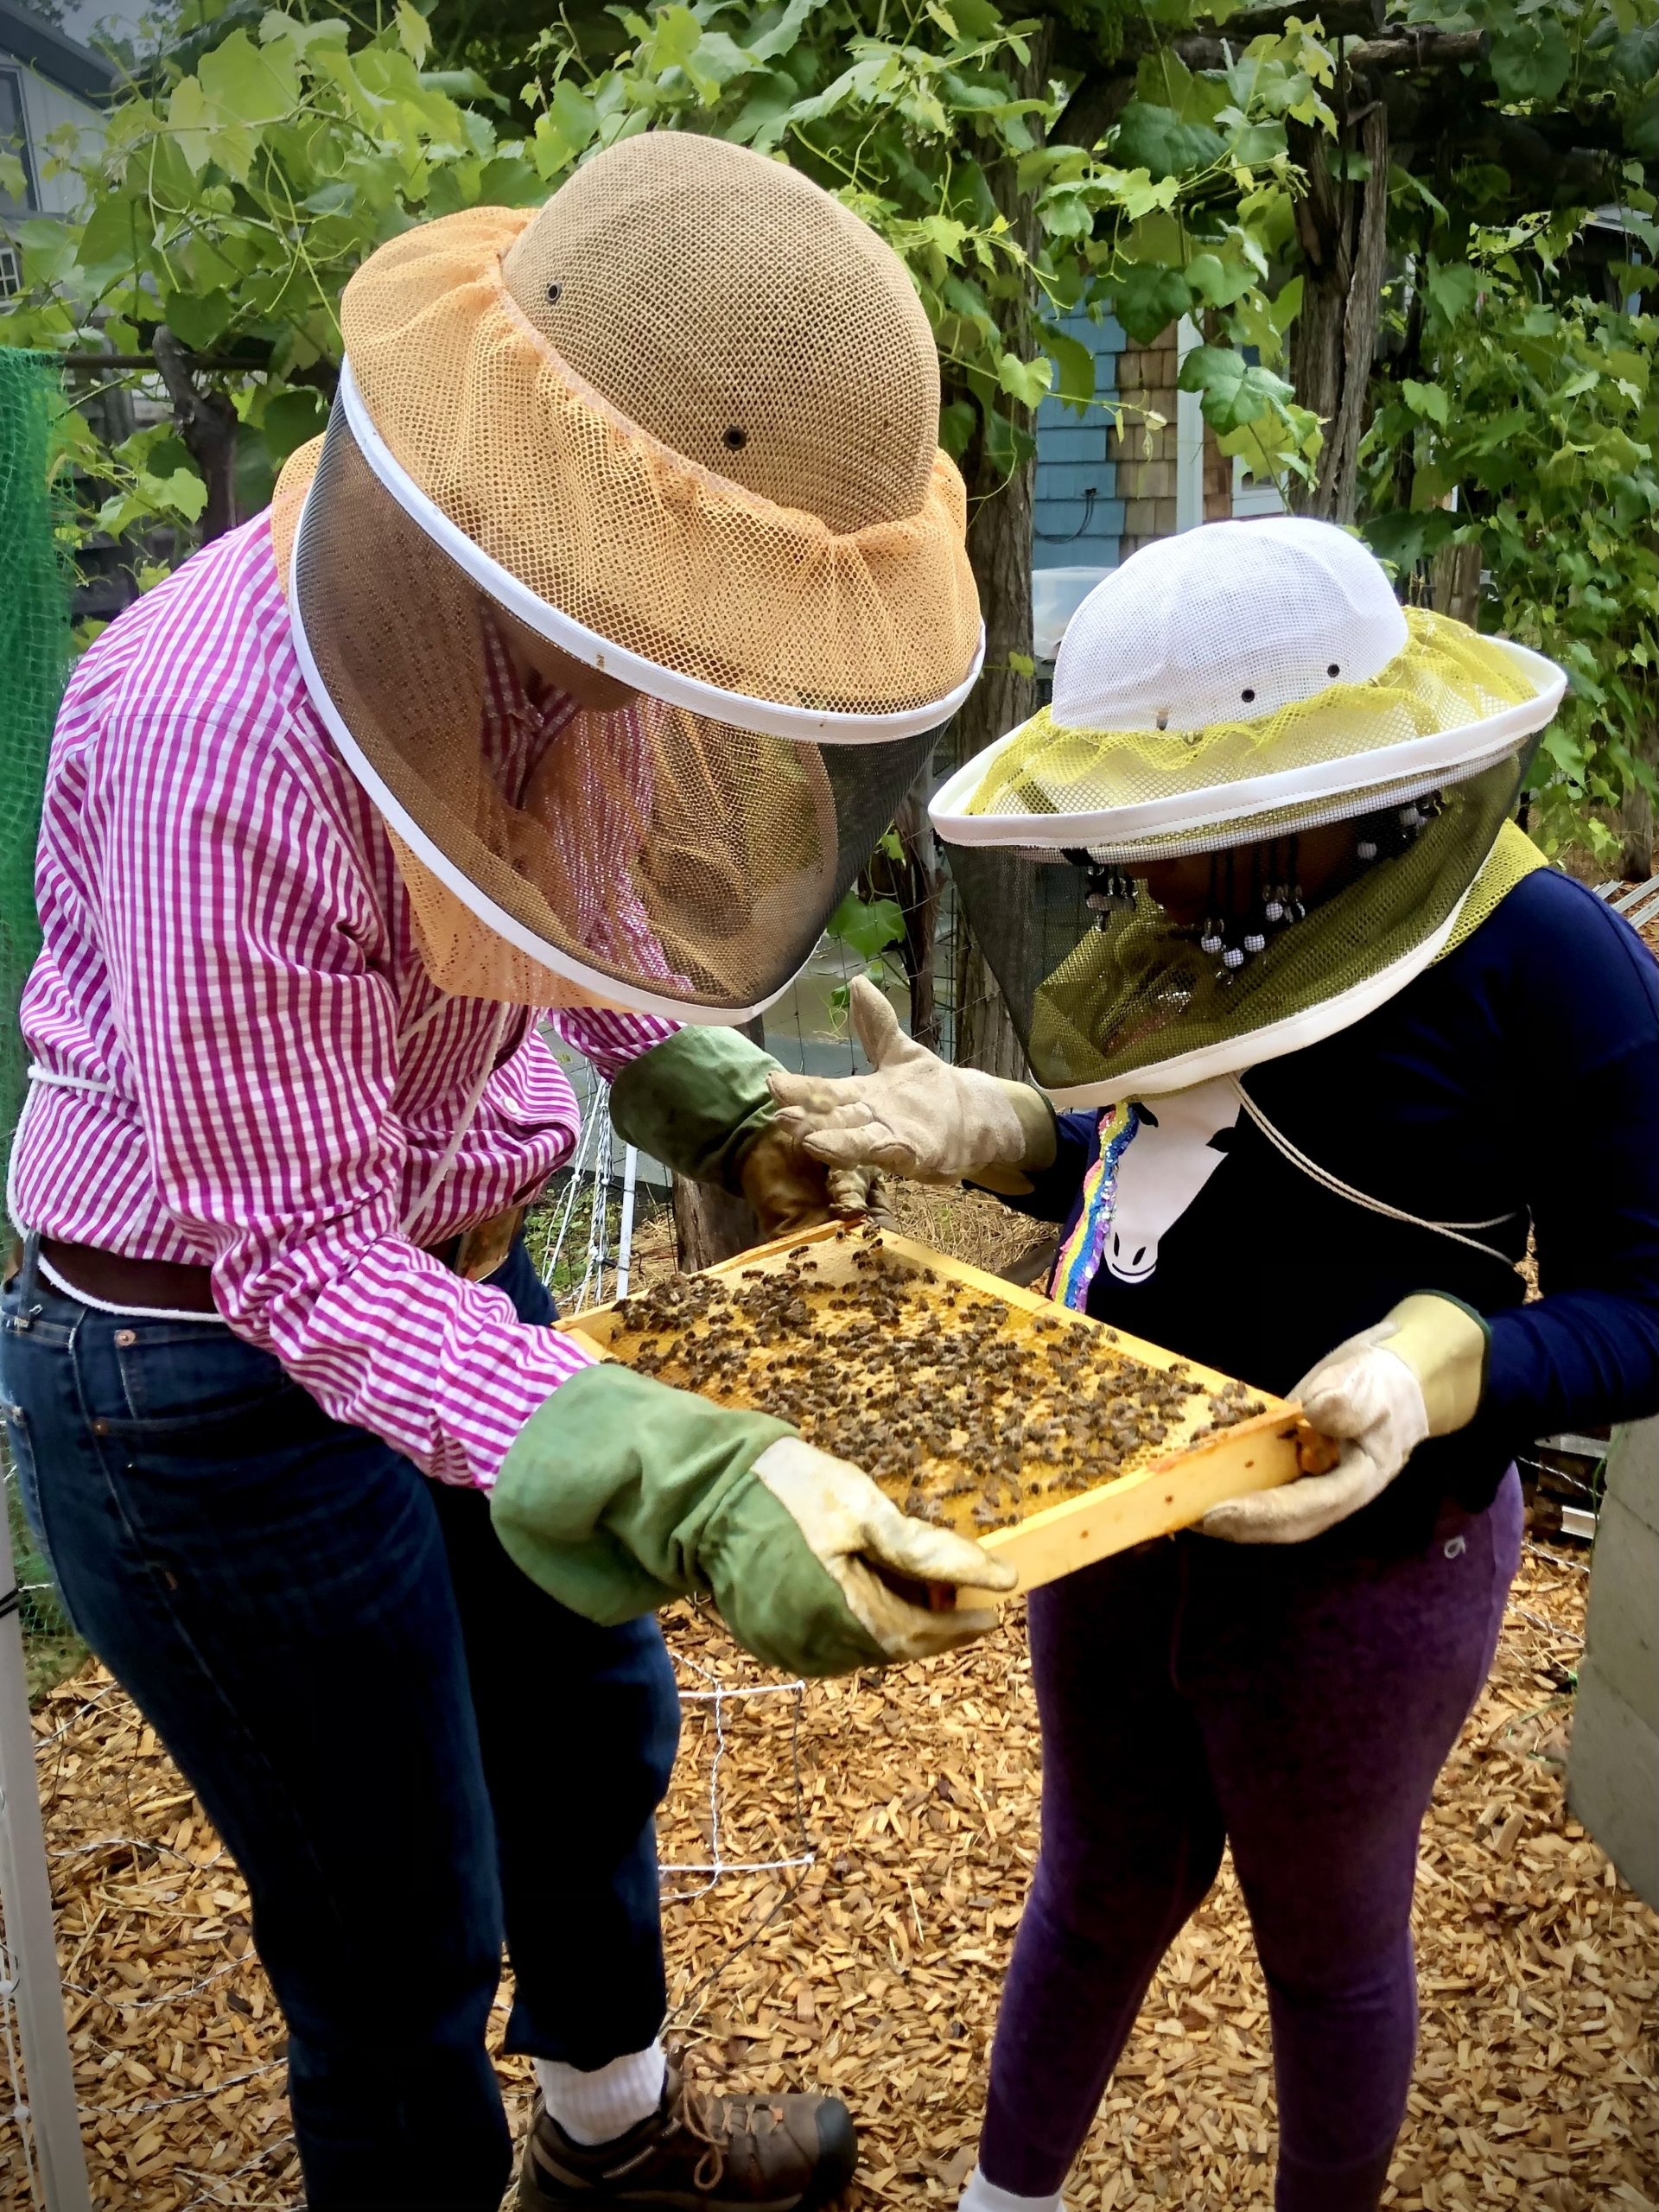 Visitors at the Little Wren Farm apiary inspecting a frame of bees